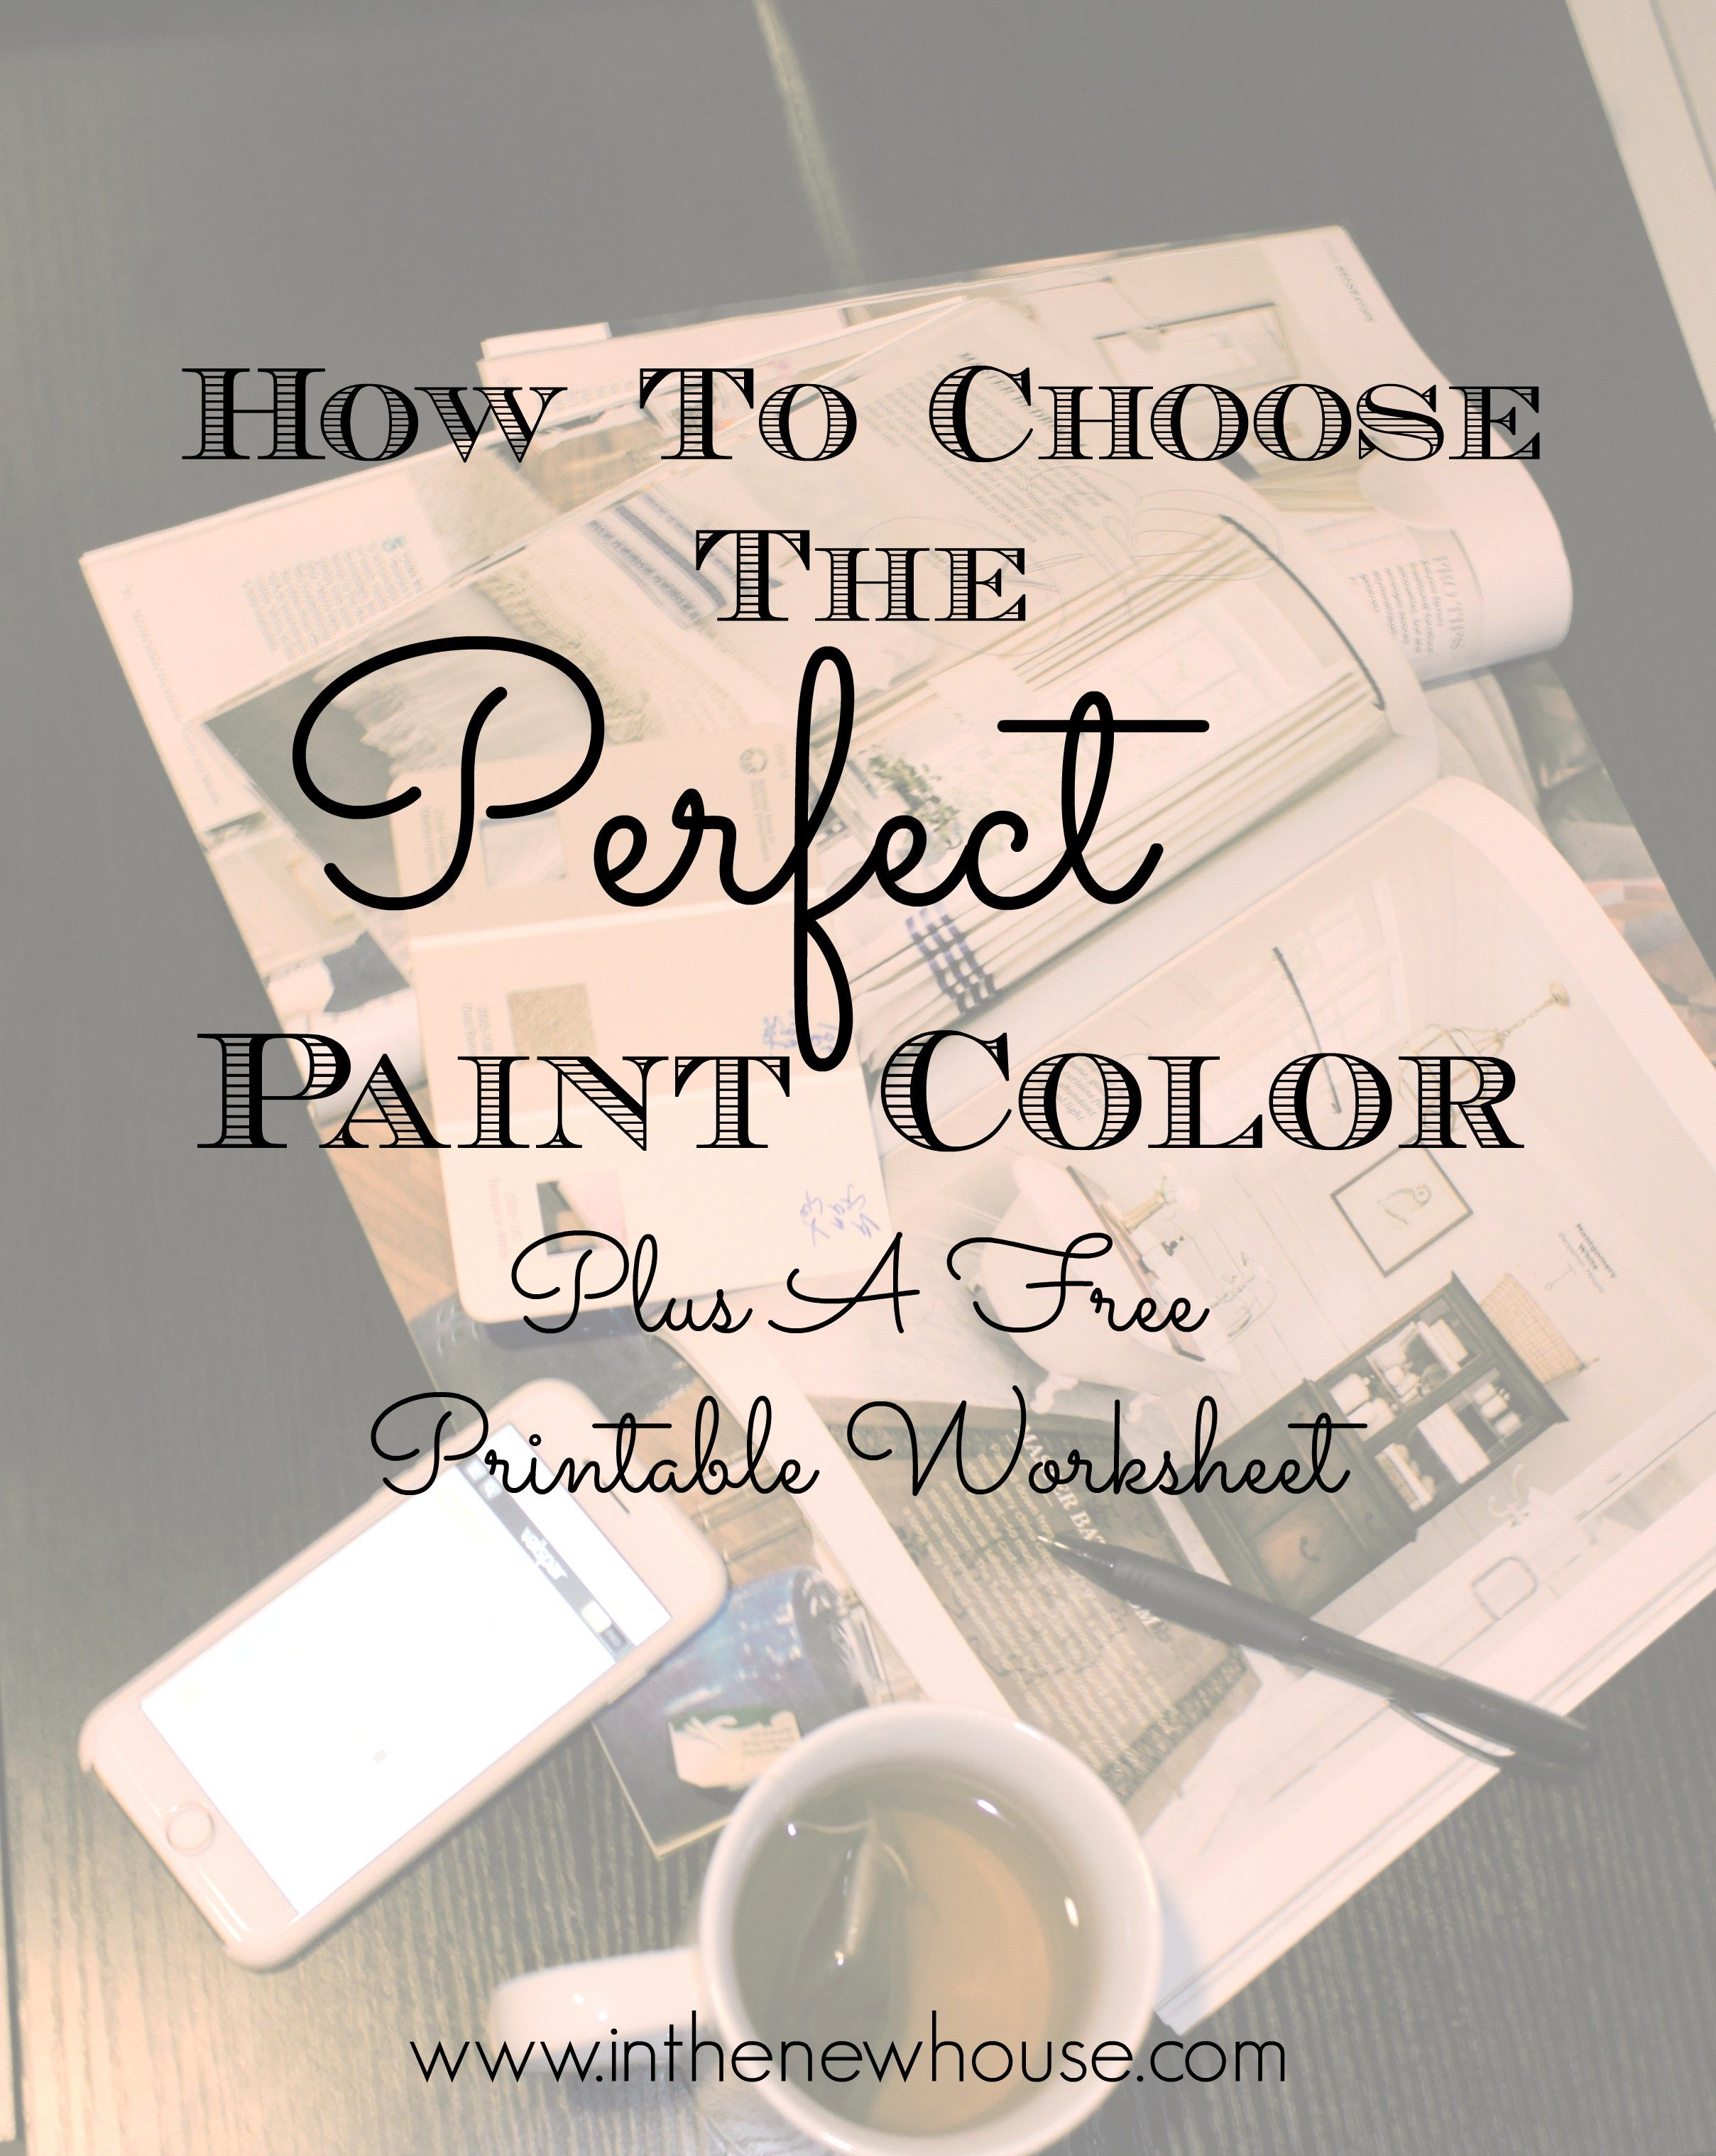 How To Choose A Paint Color And A Free Worksheet